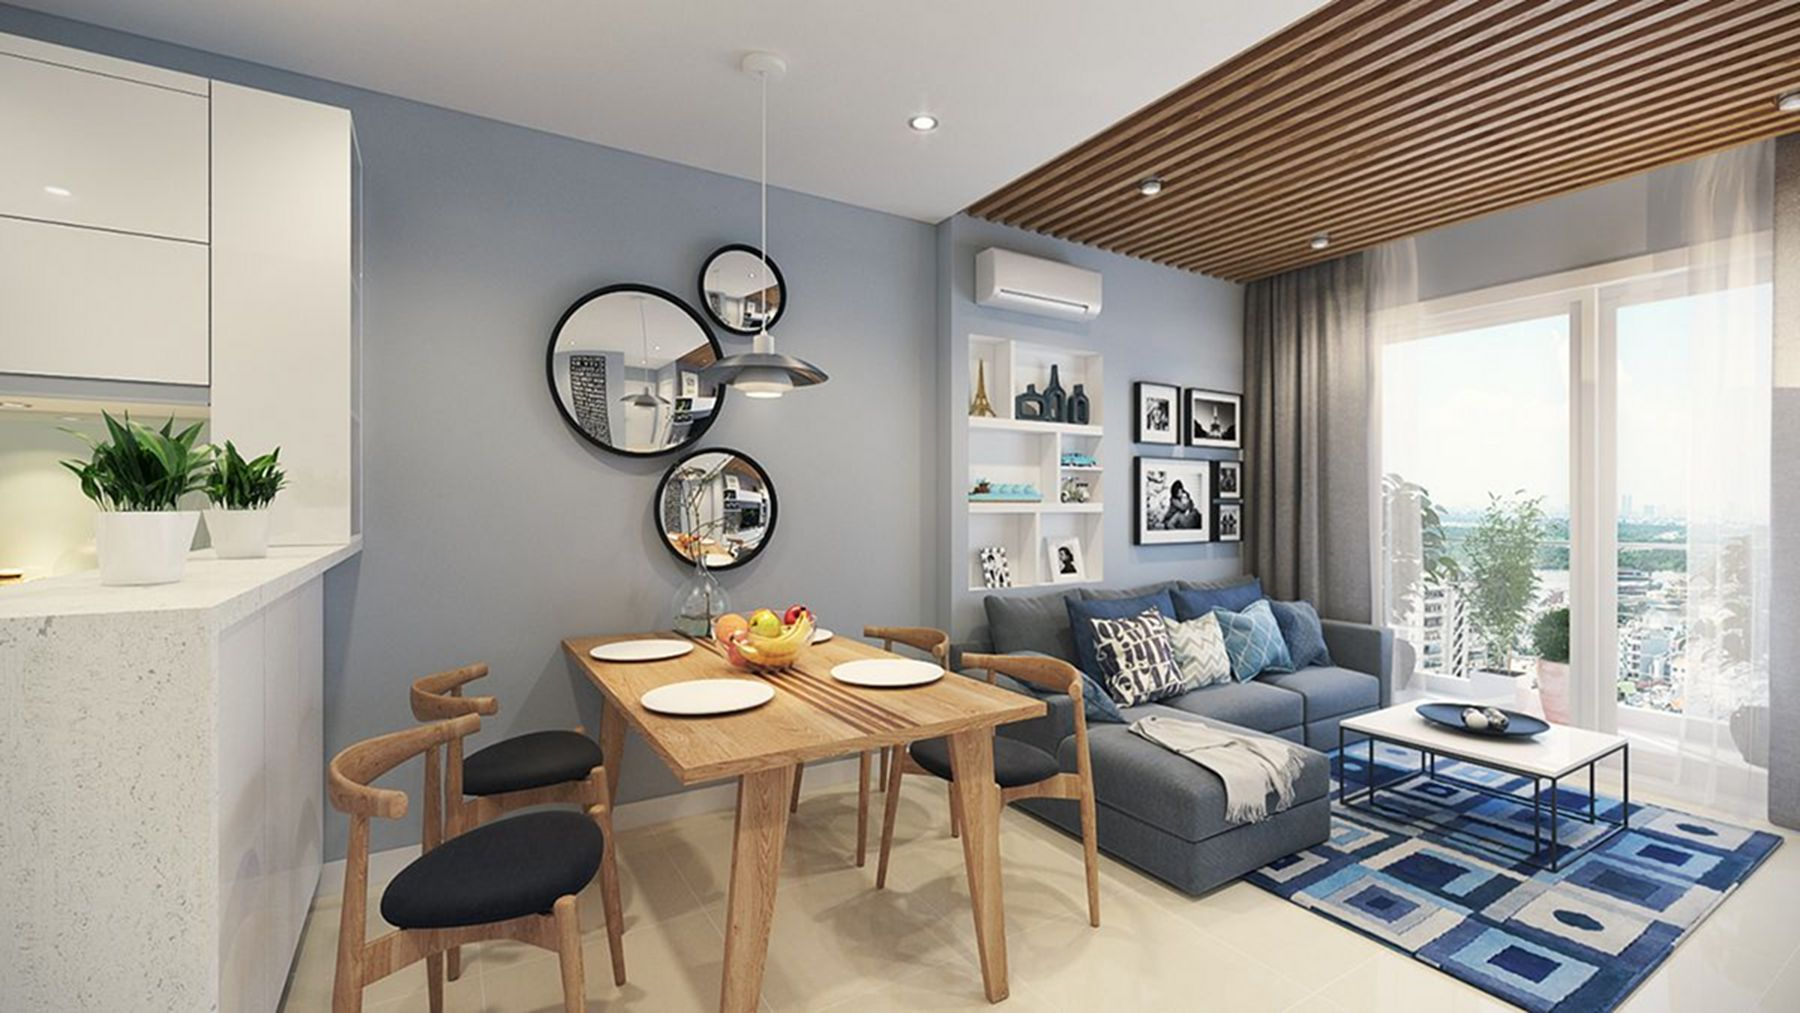 12 amazing apartment interior design ideas for the comfort on stunning minimalist apartment décor ideas home decor for your small apartment id=32123